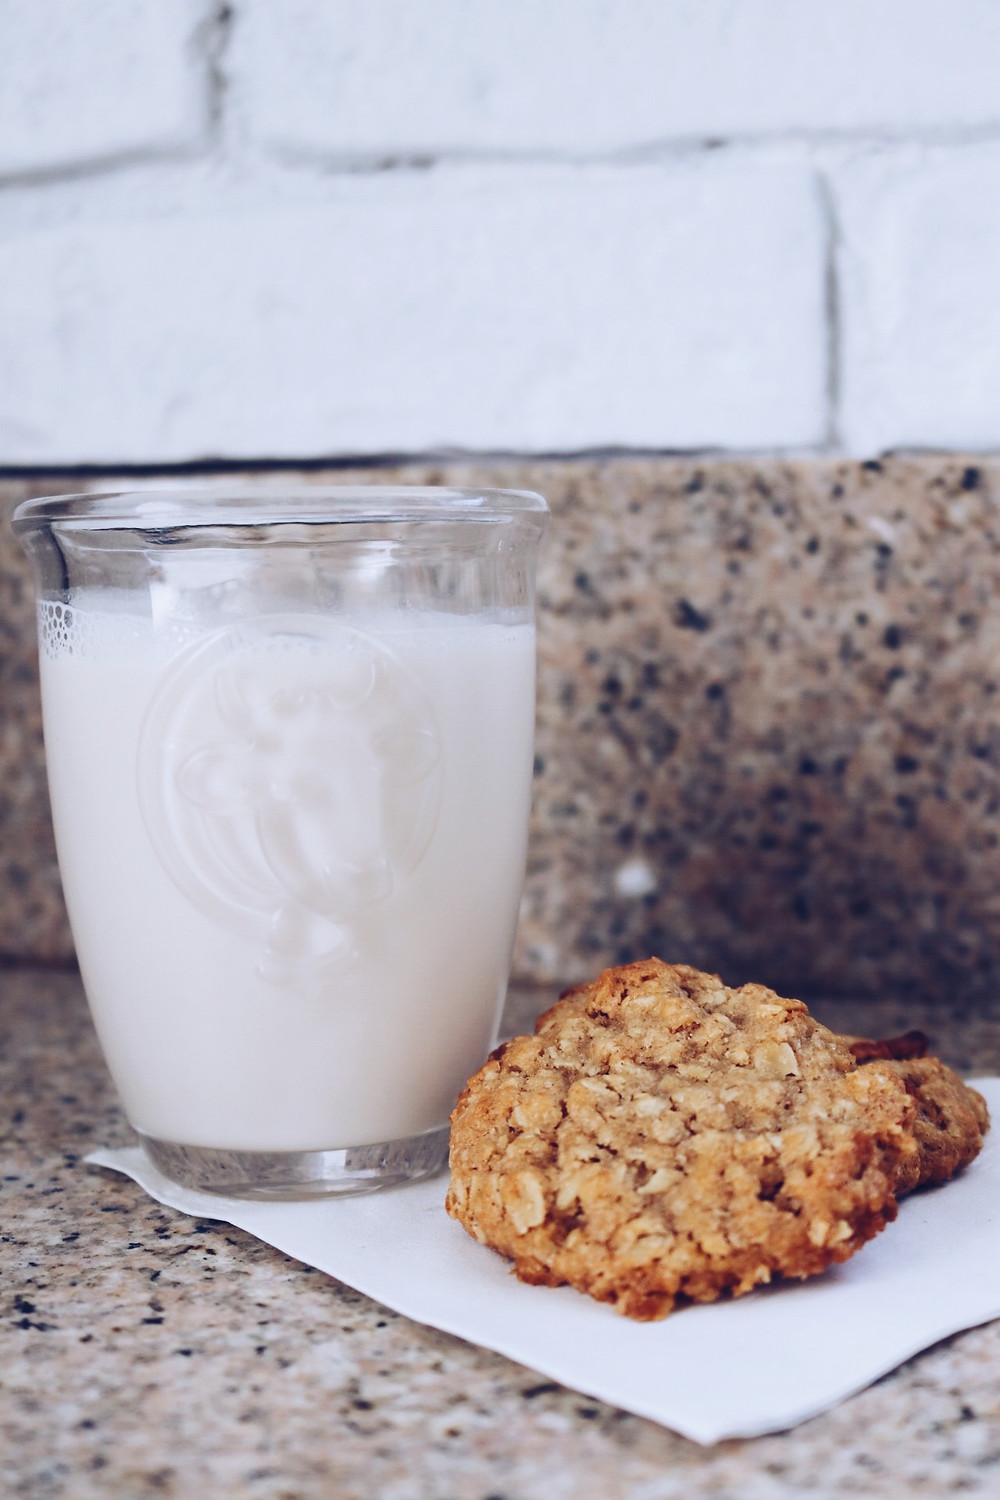 Williams Sonoma Milk Jar Apple Oatmeal Cookie Mix